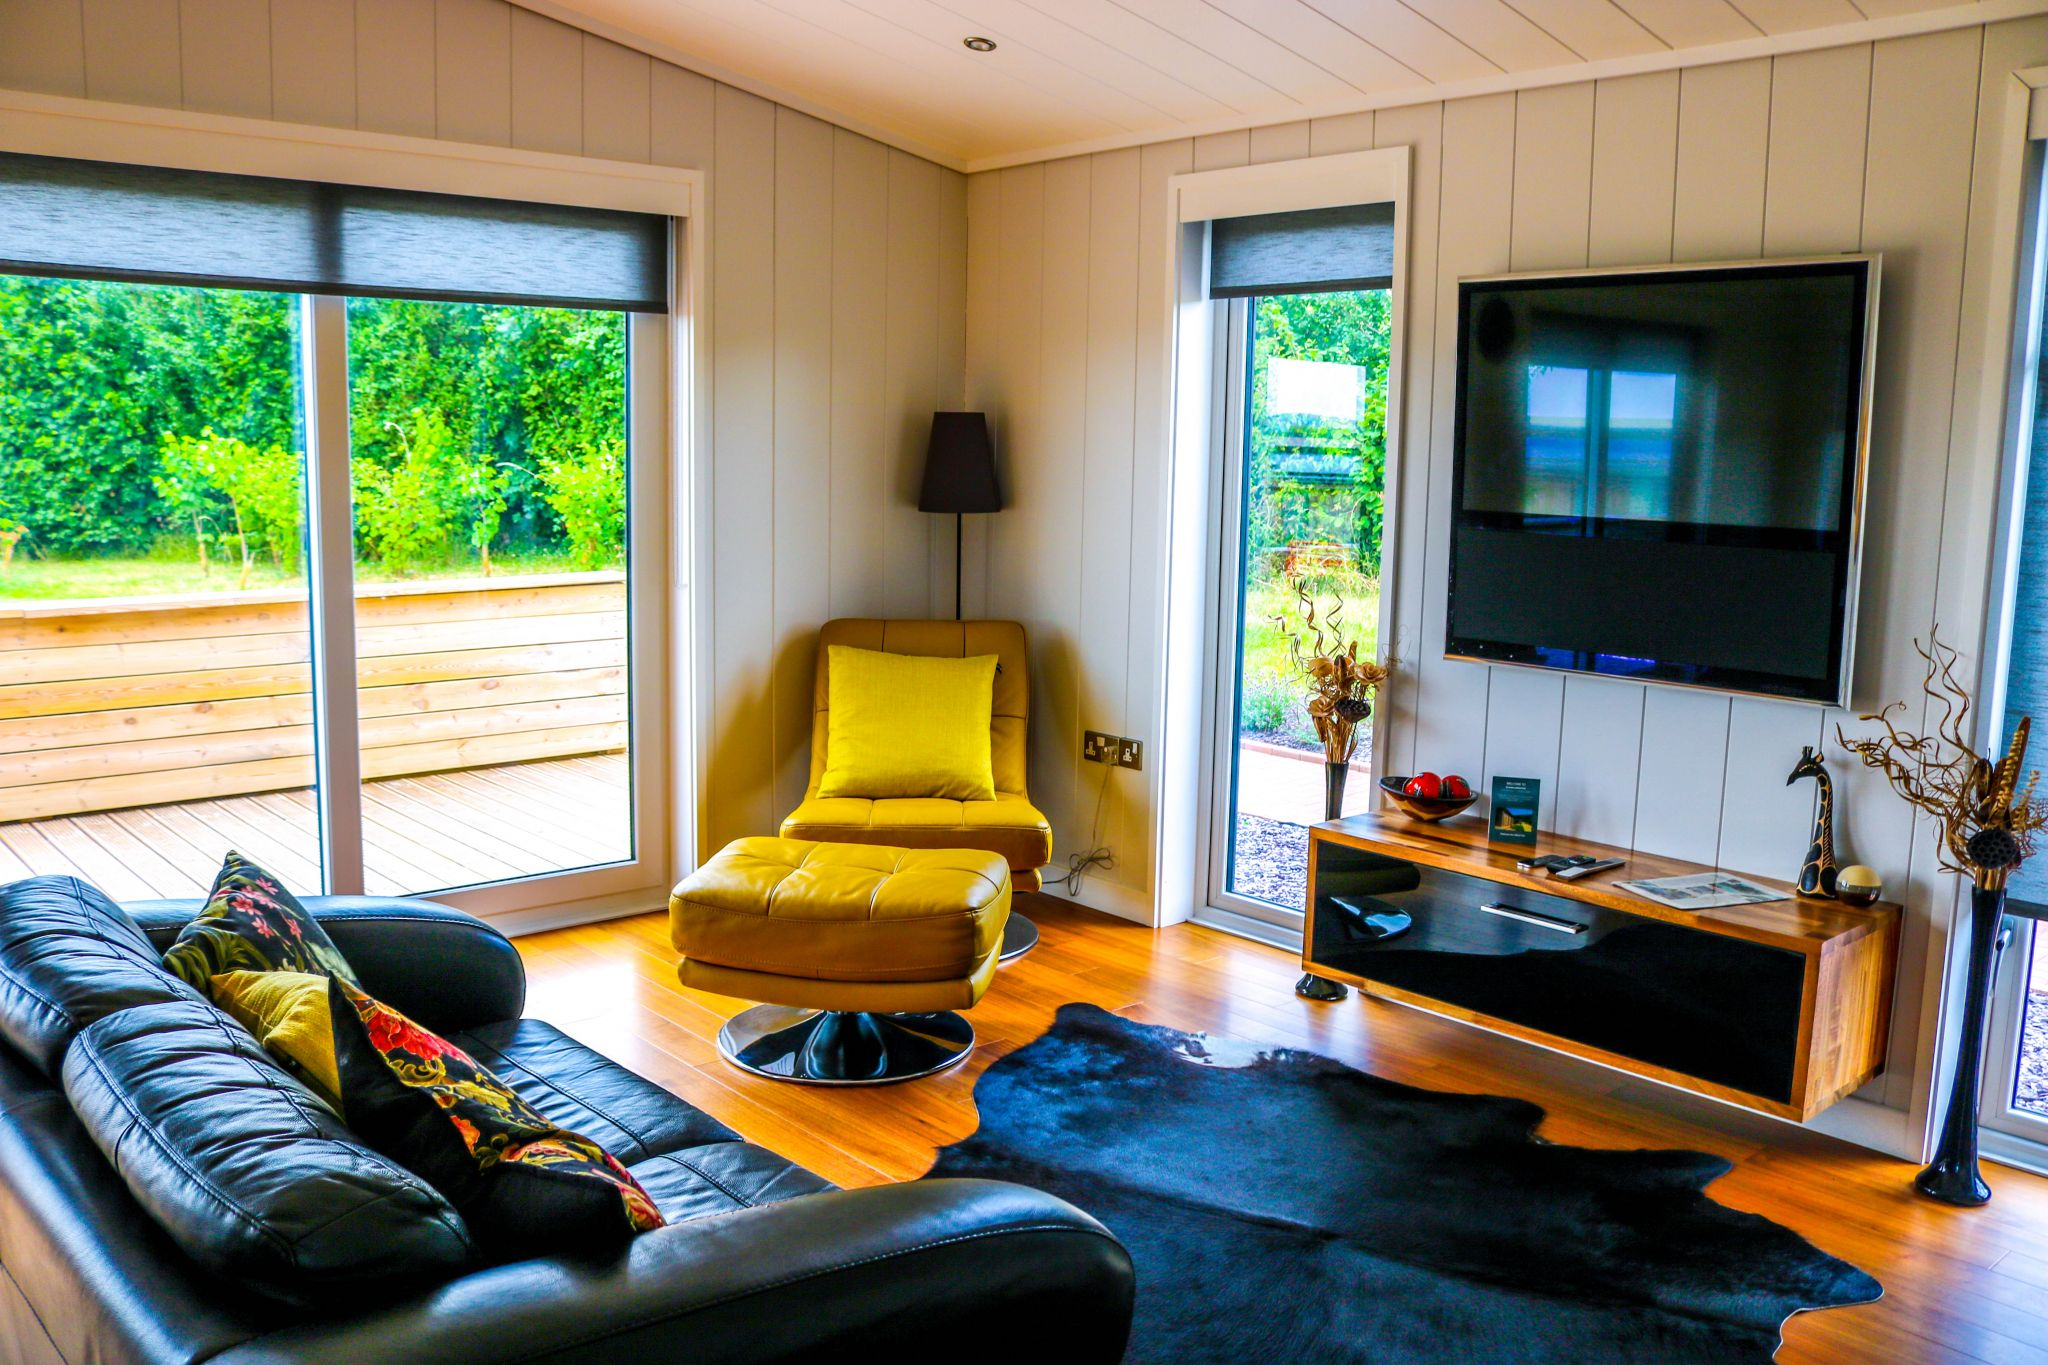 A luxury lodge stay at Strawberryfield Park